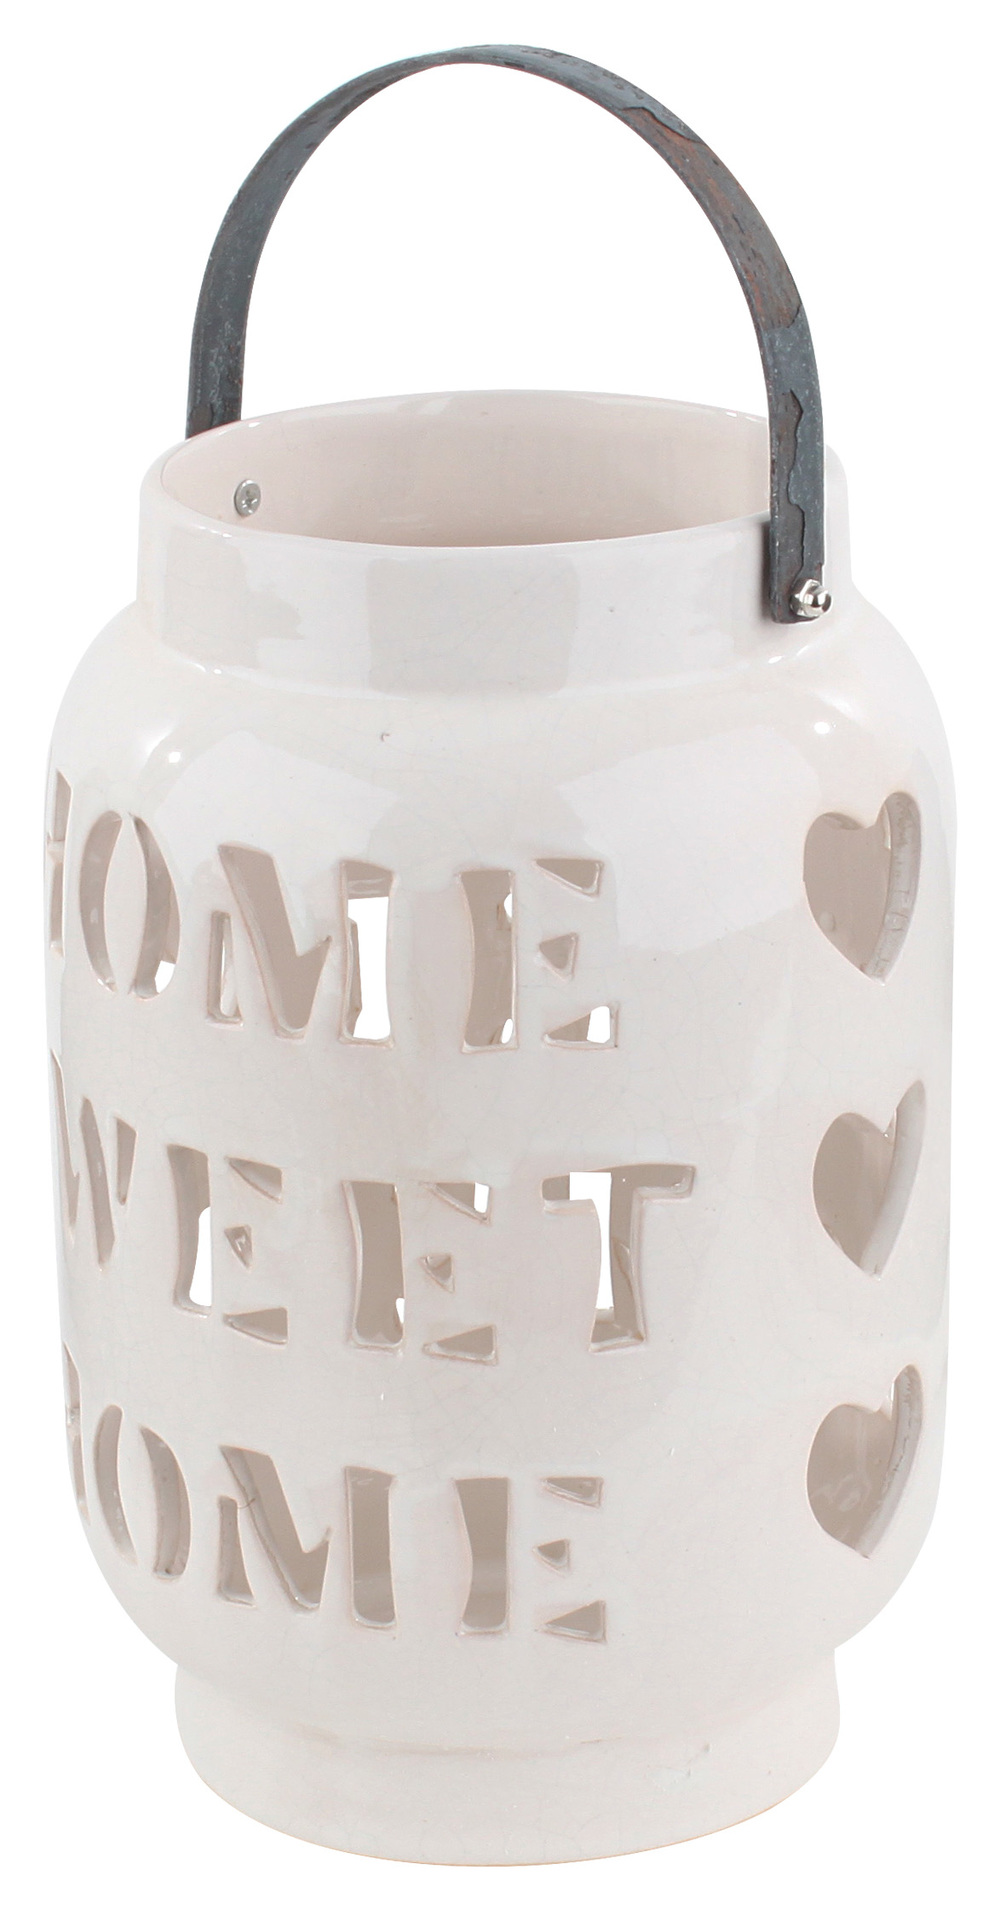 €45 CERAMIC LANTERN/CANDLE HOLDER IN IVORY COLOR  'HOME' 19X28.5/35